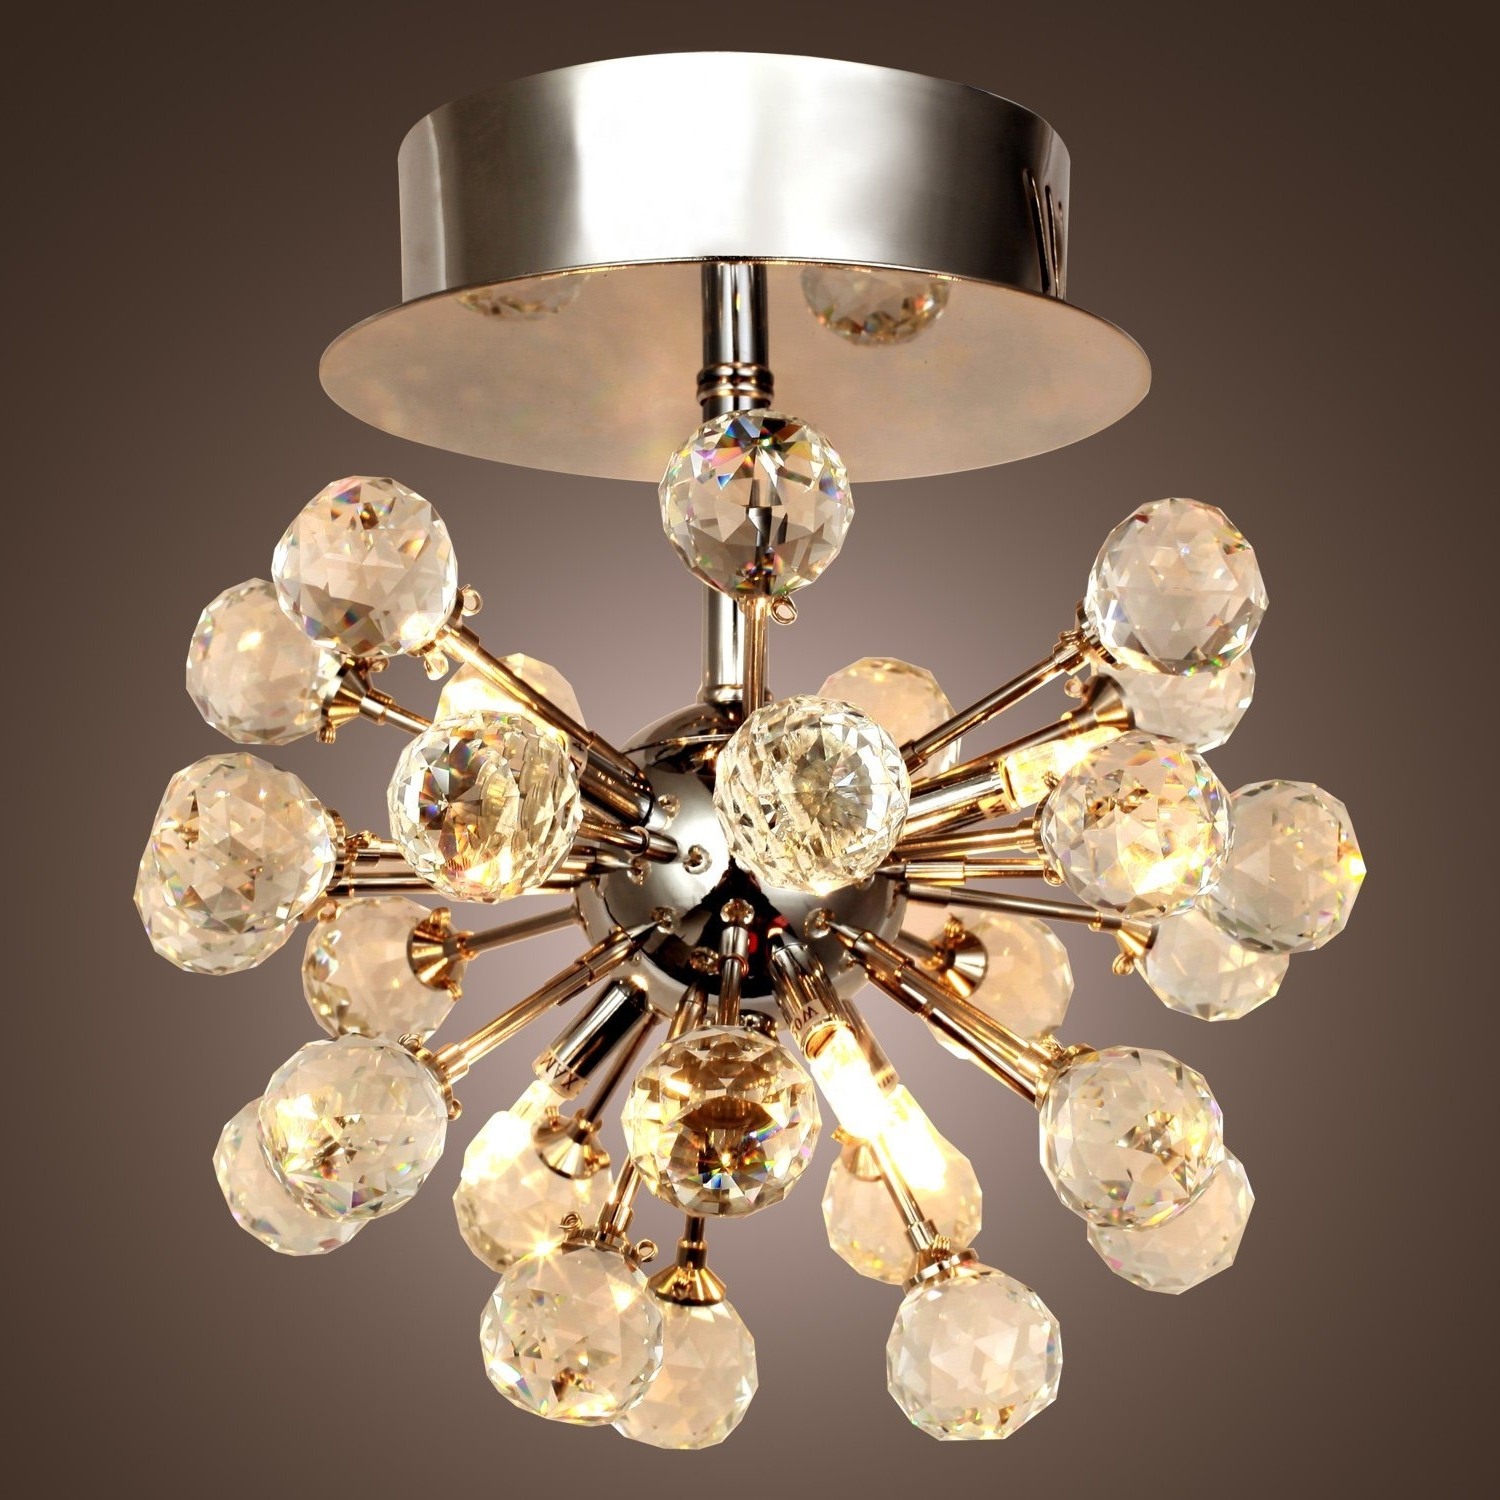 Short Chandelier Lights With Regard To Widely Used Lightinthebox Max 10W K9 Crystal Chandelier With 6 Lights In Globe (View 7 of 15)